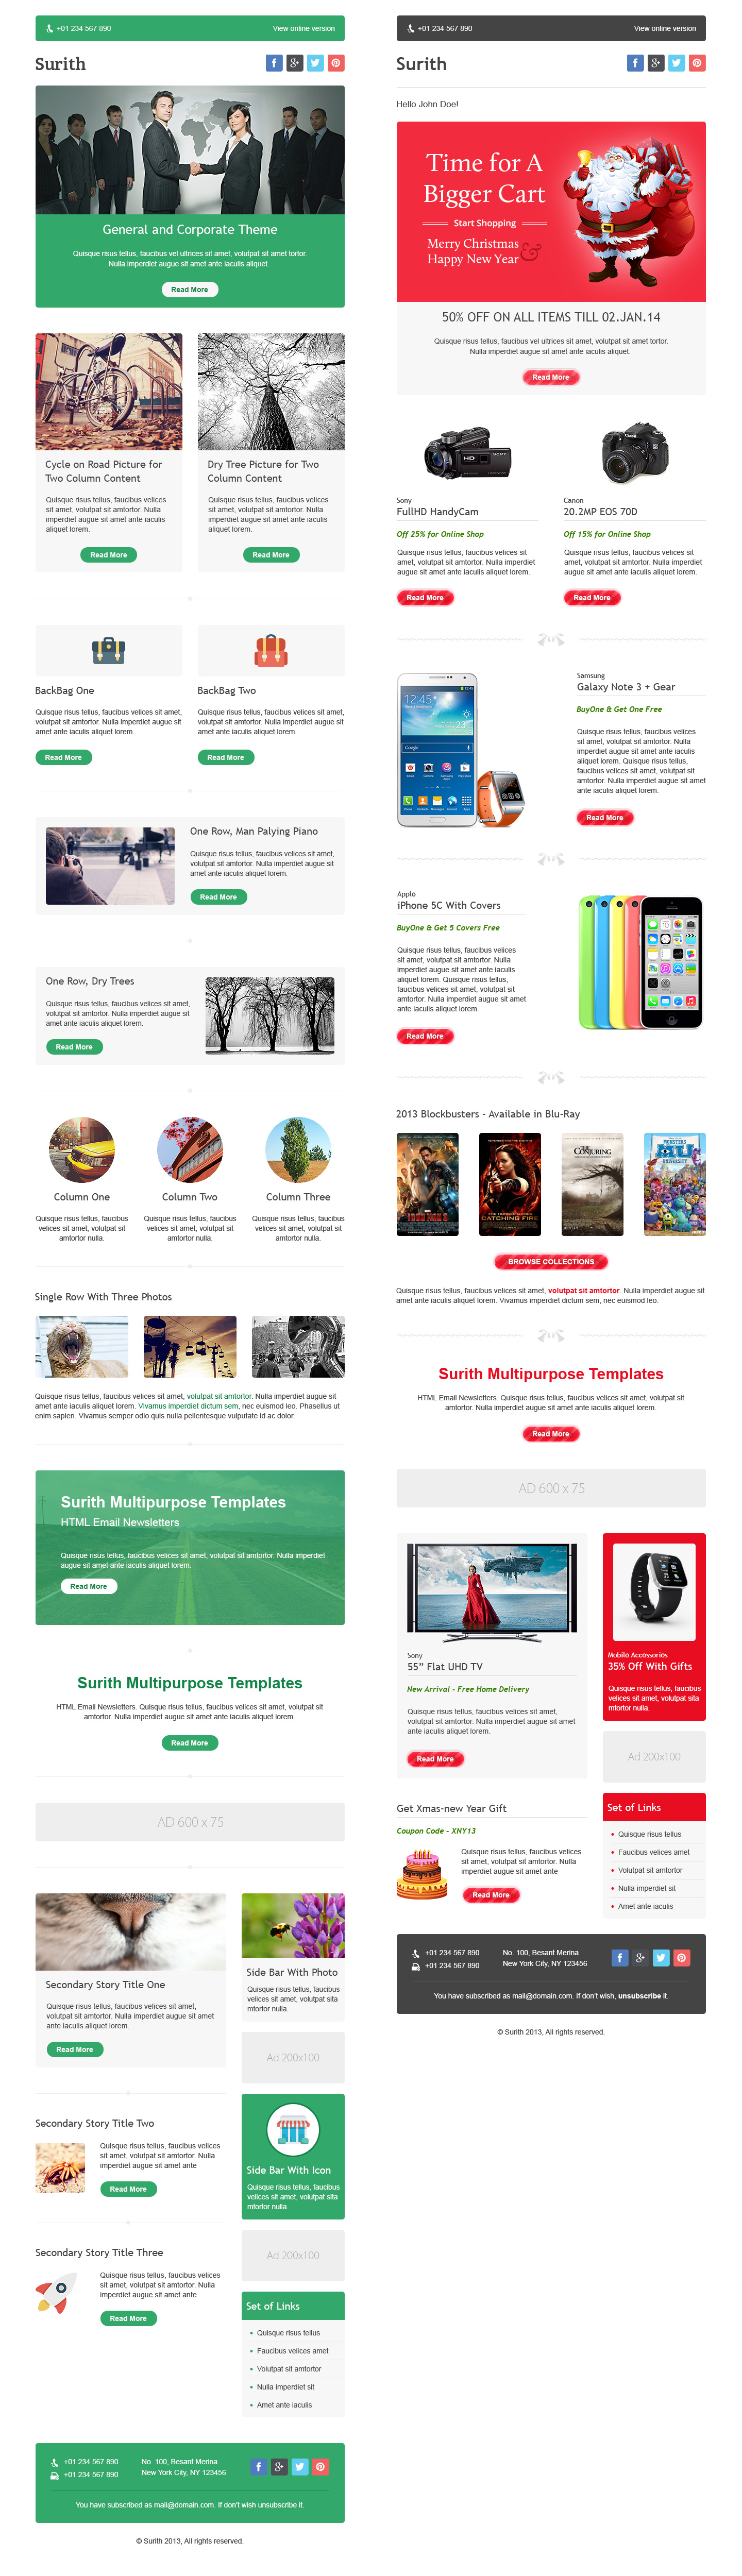 Surith - Multipurpose Email Newsletter Templates